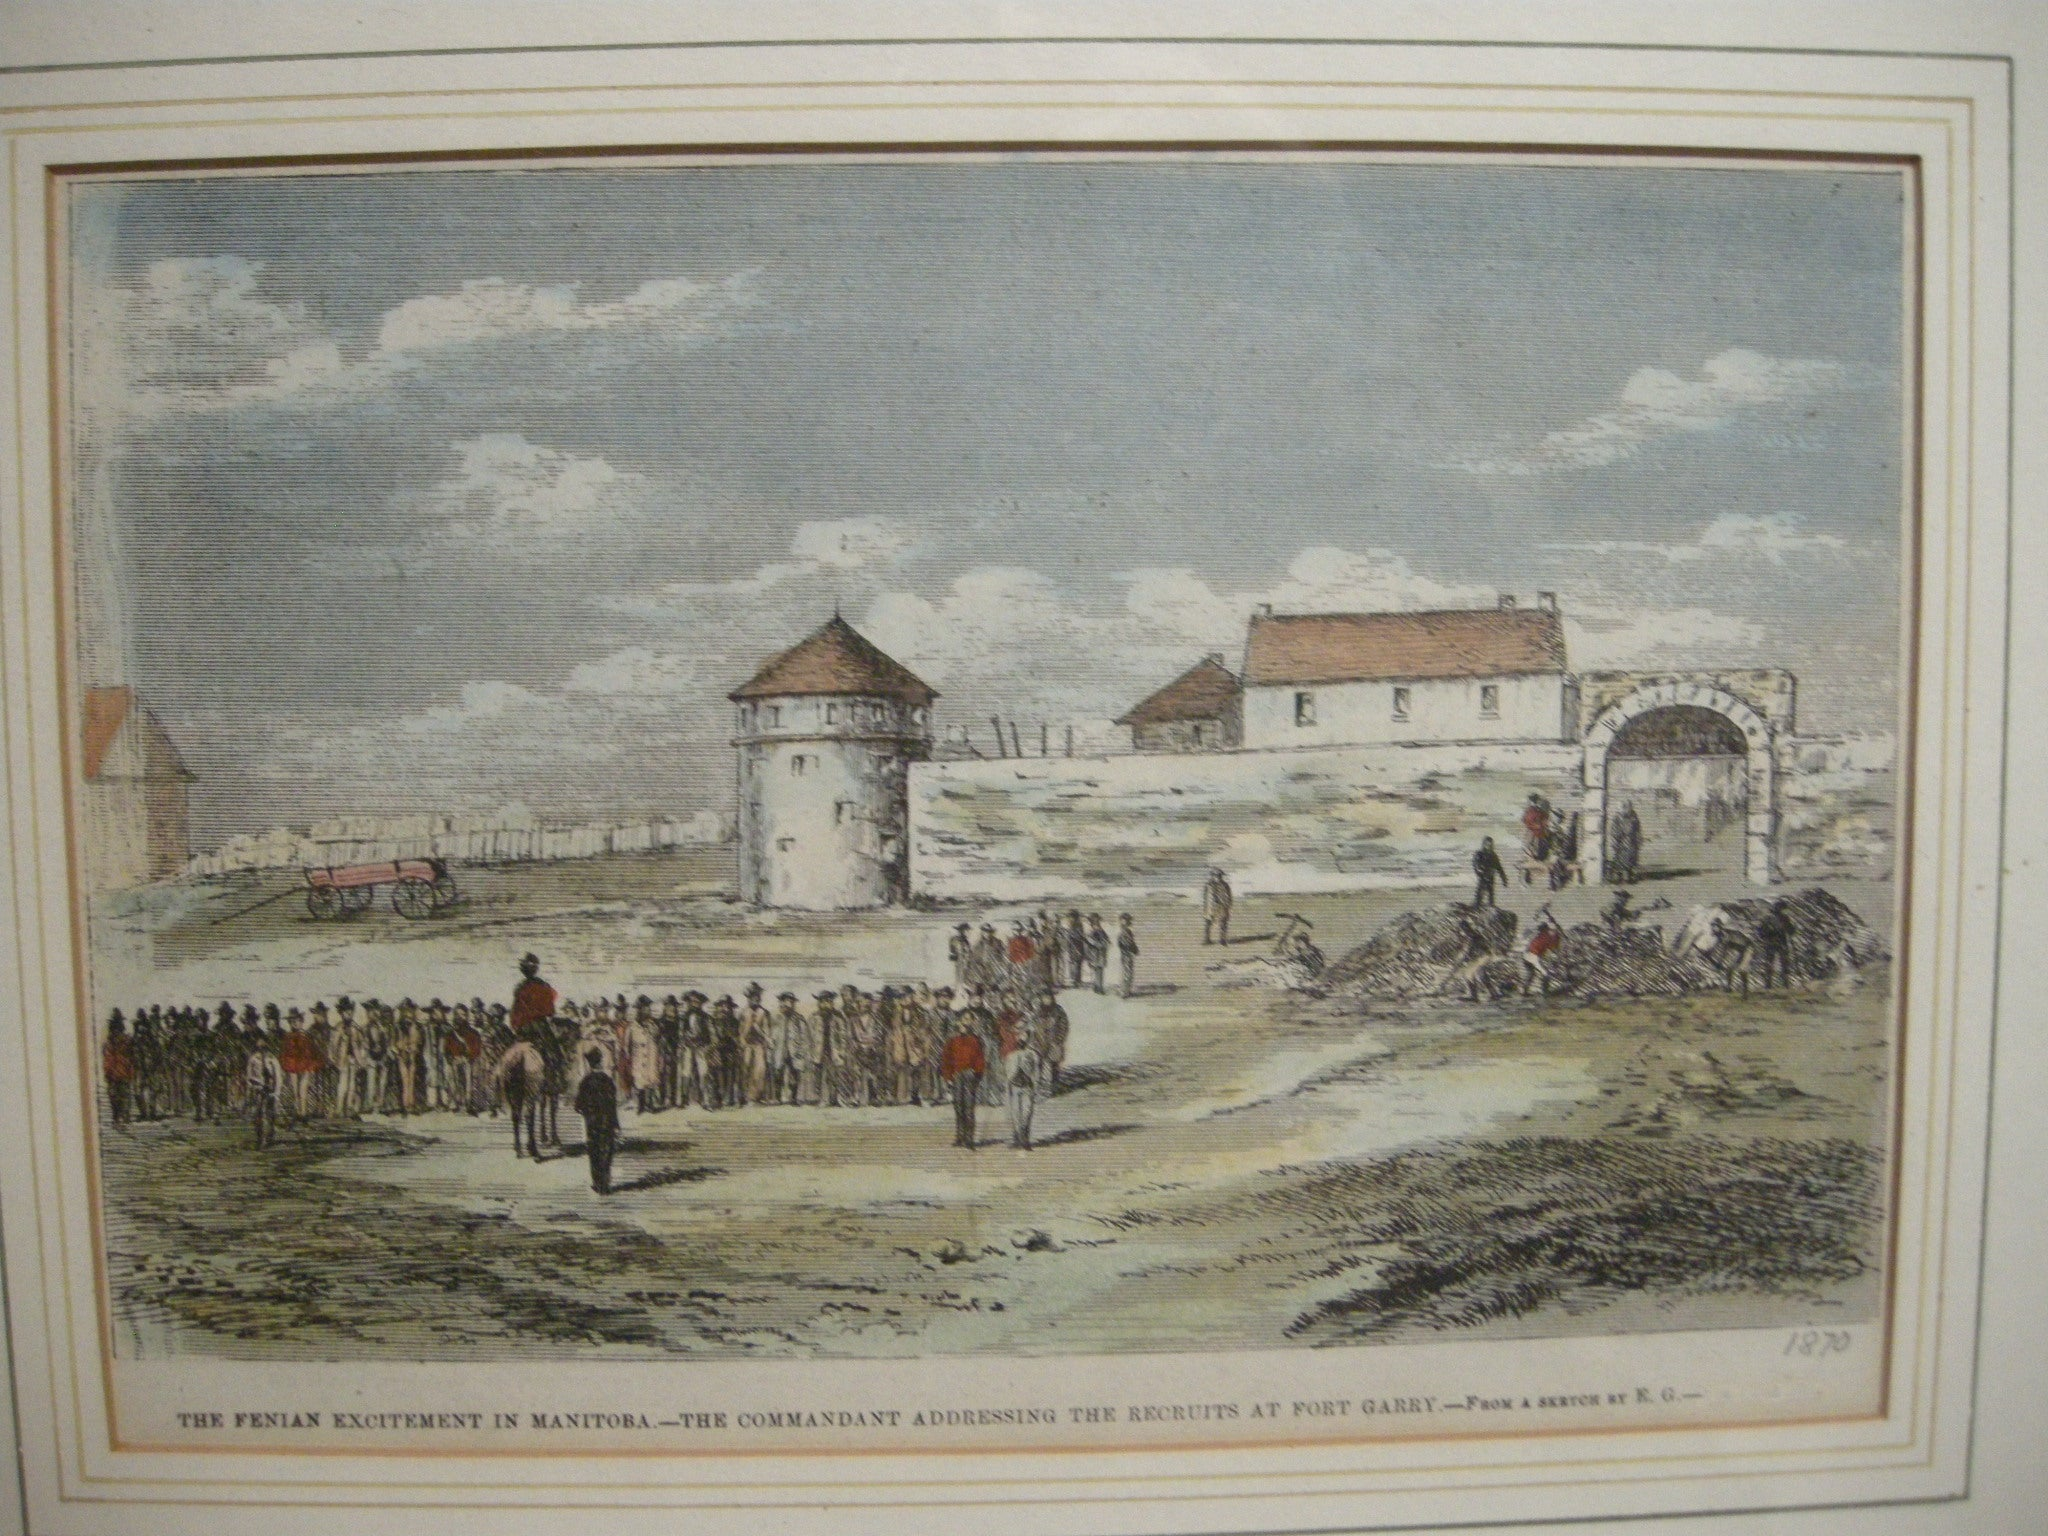 Fenian Excitement and Recruits At Fort Garry - CreativeCollection